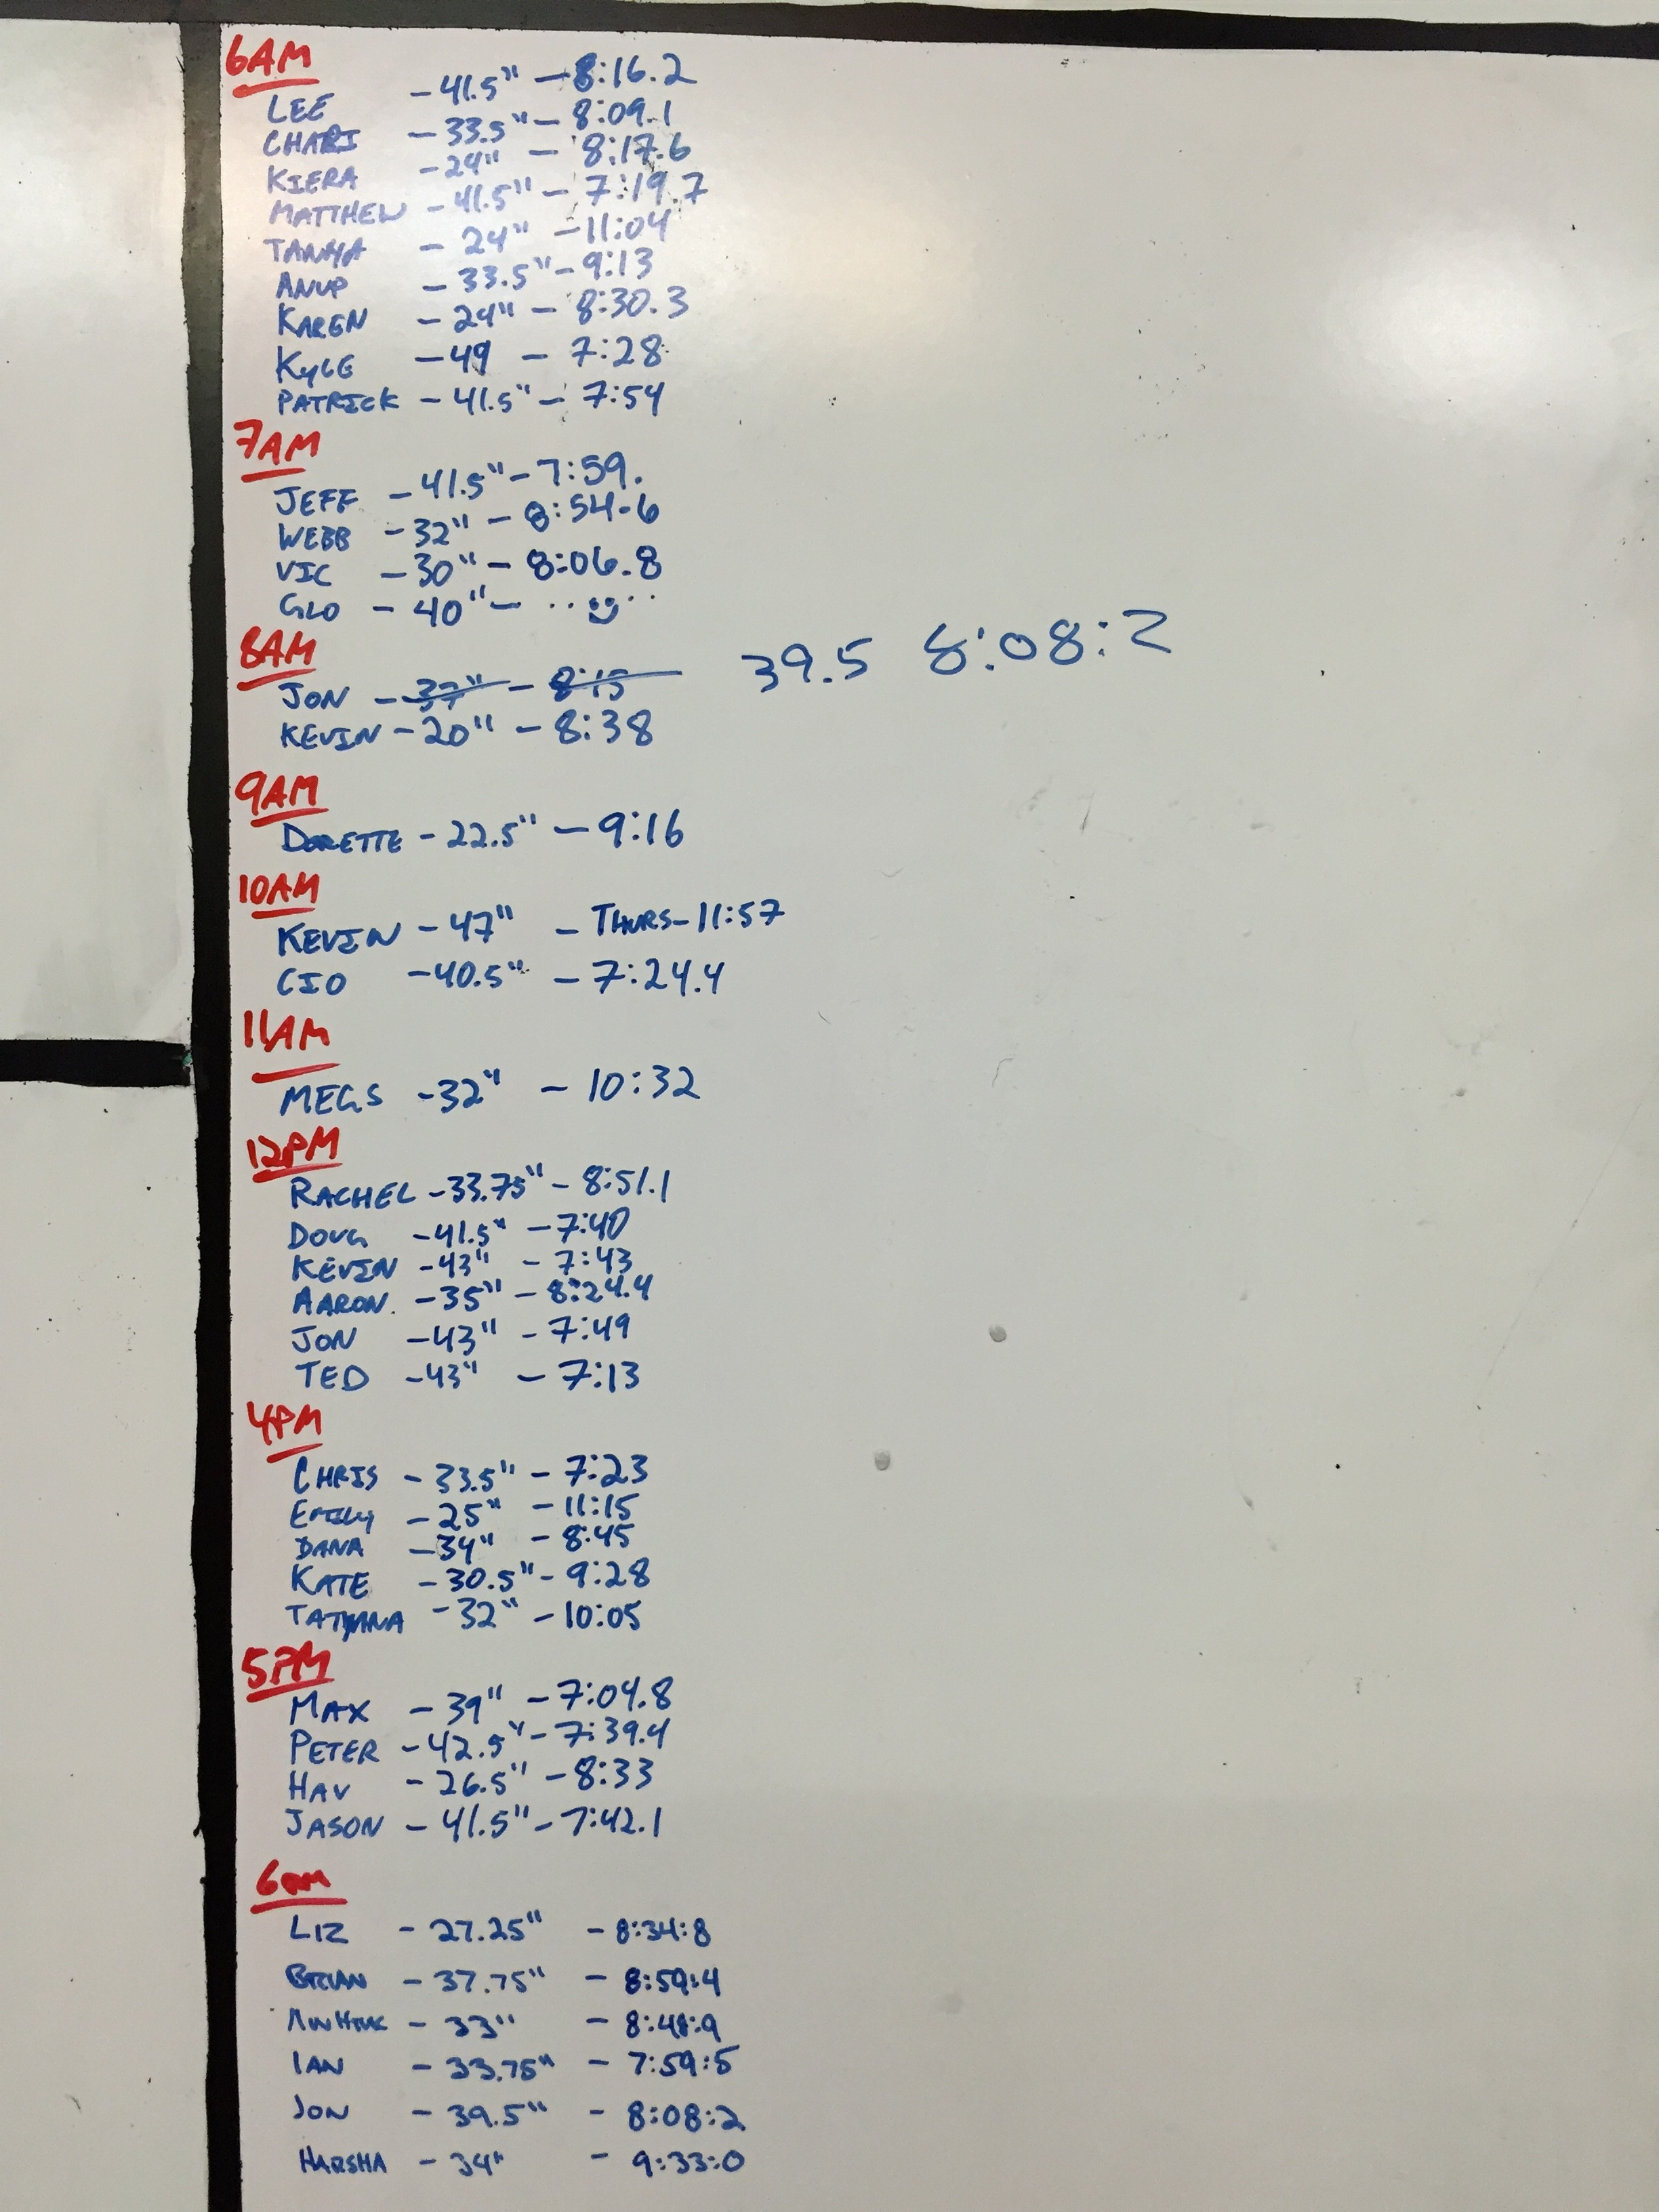 Oct 3 WOD Results